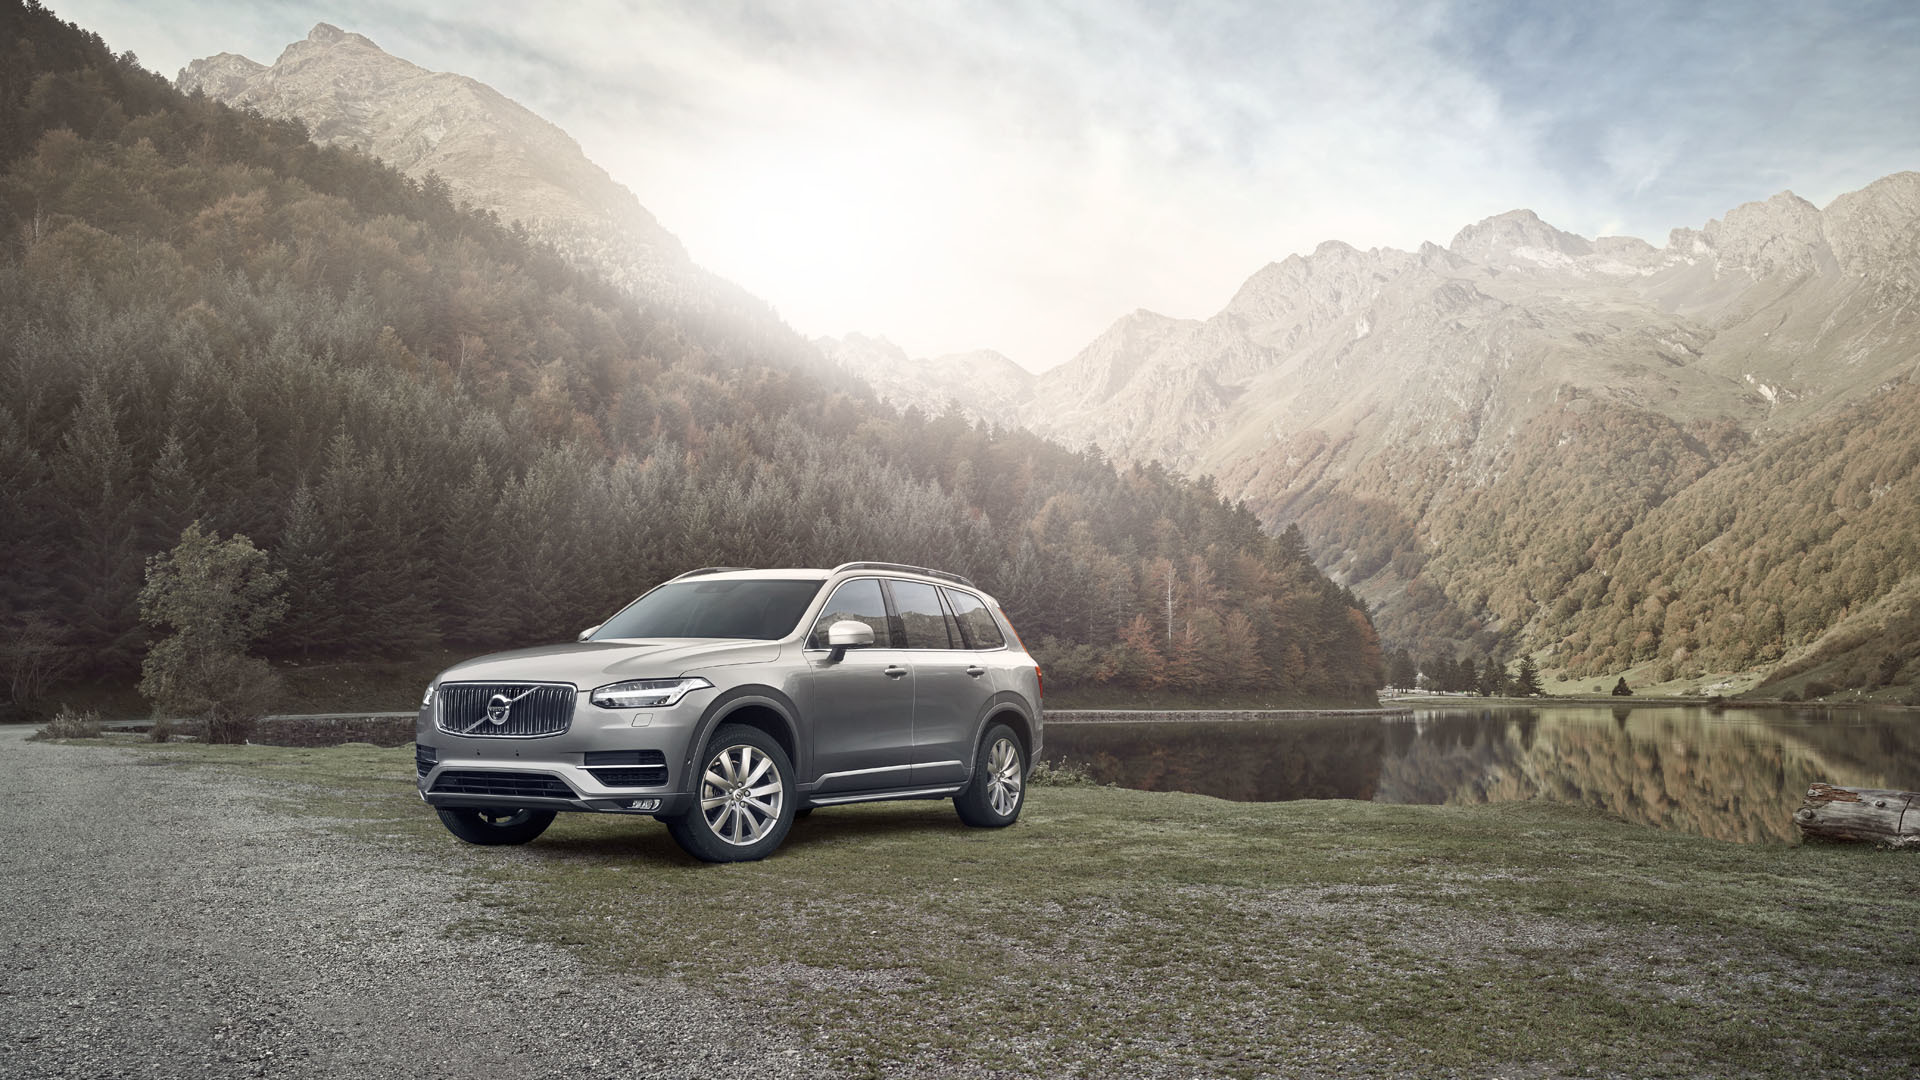 dw_1510_volvoxc90_spain_lakeside_fnl_lay_rgb_1920pxl